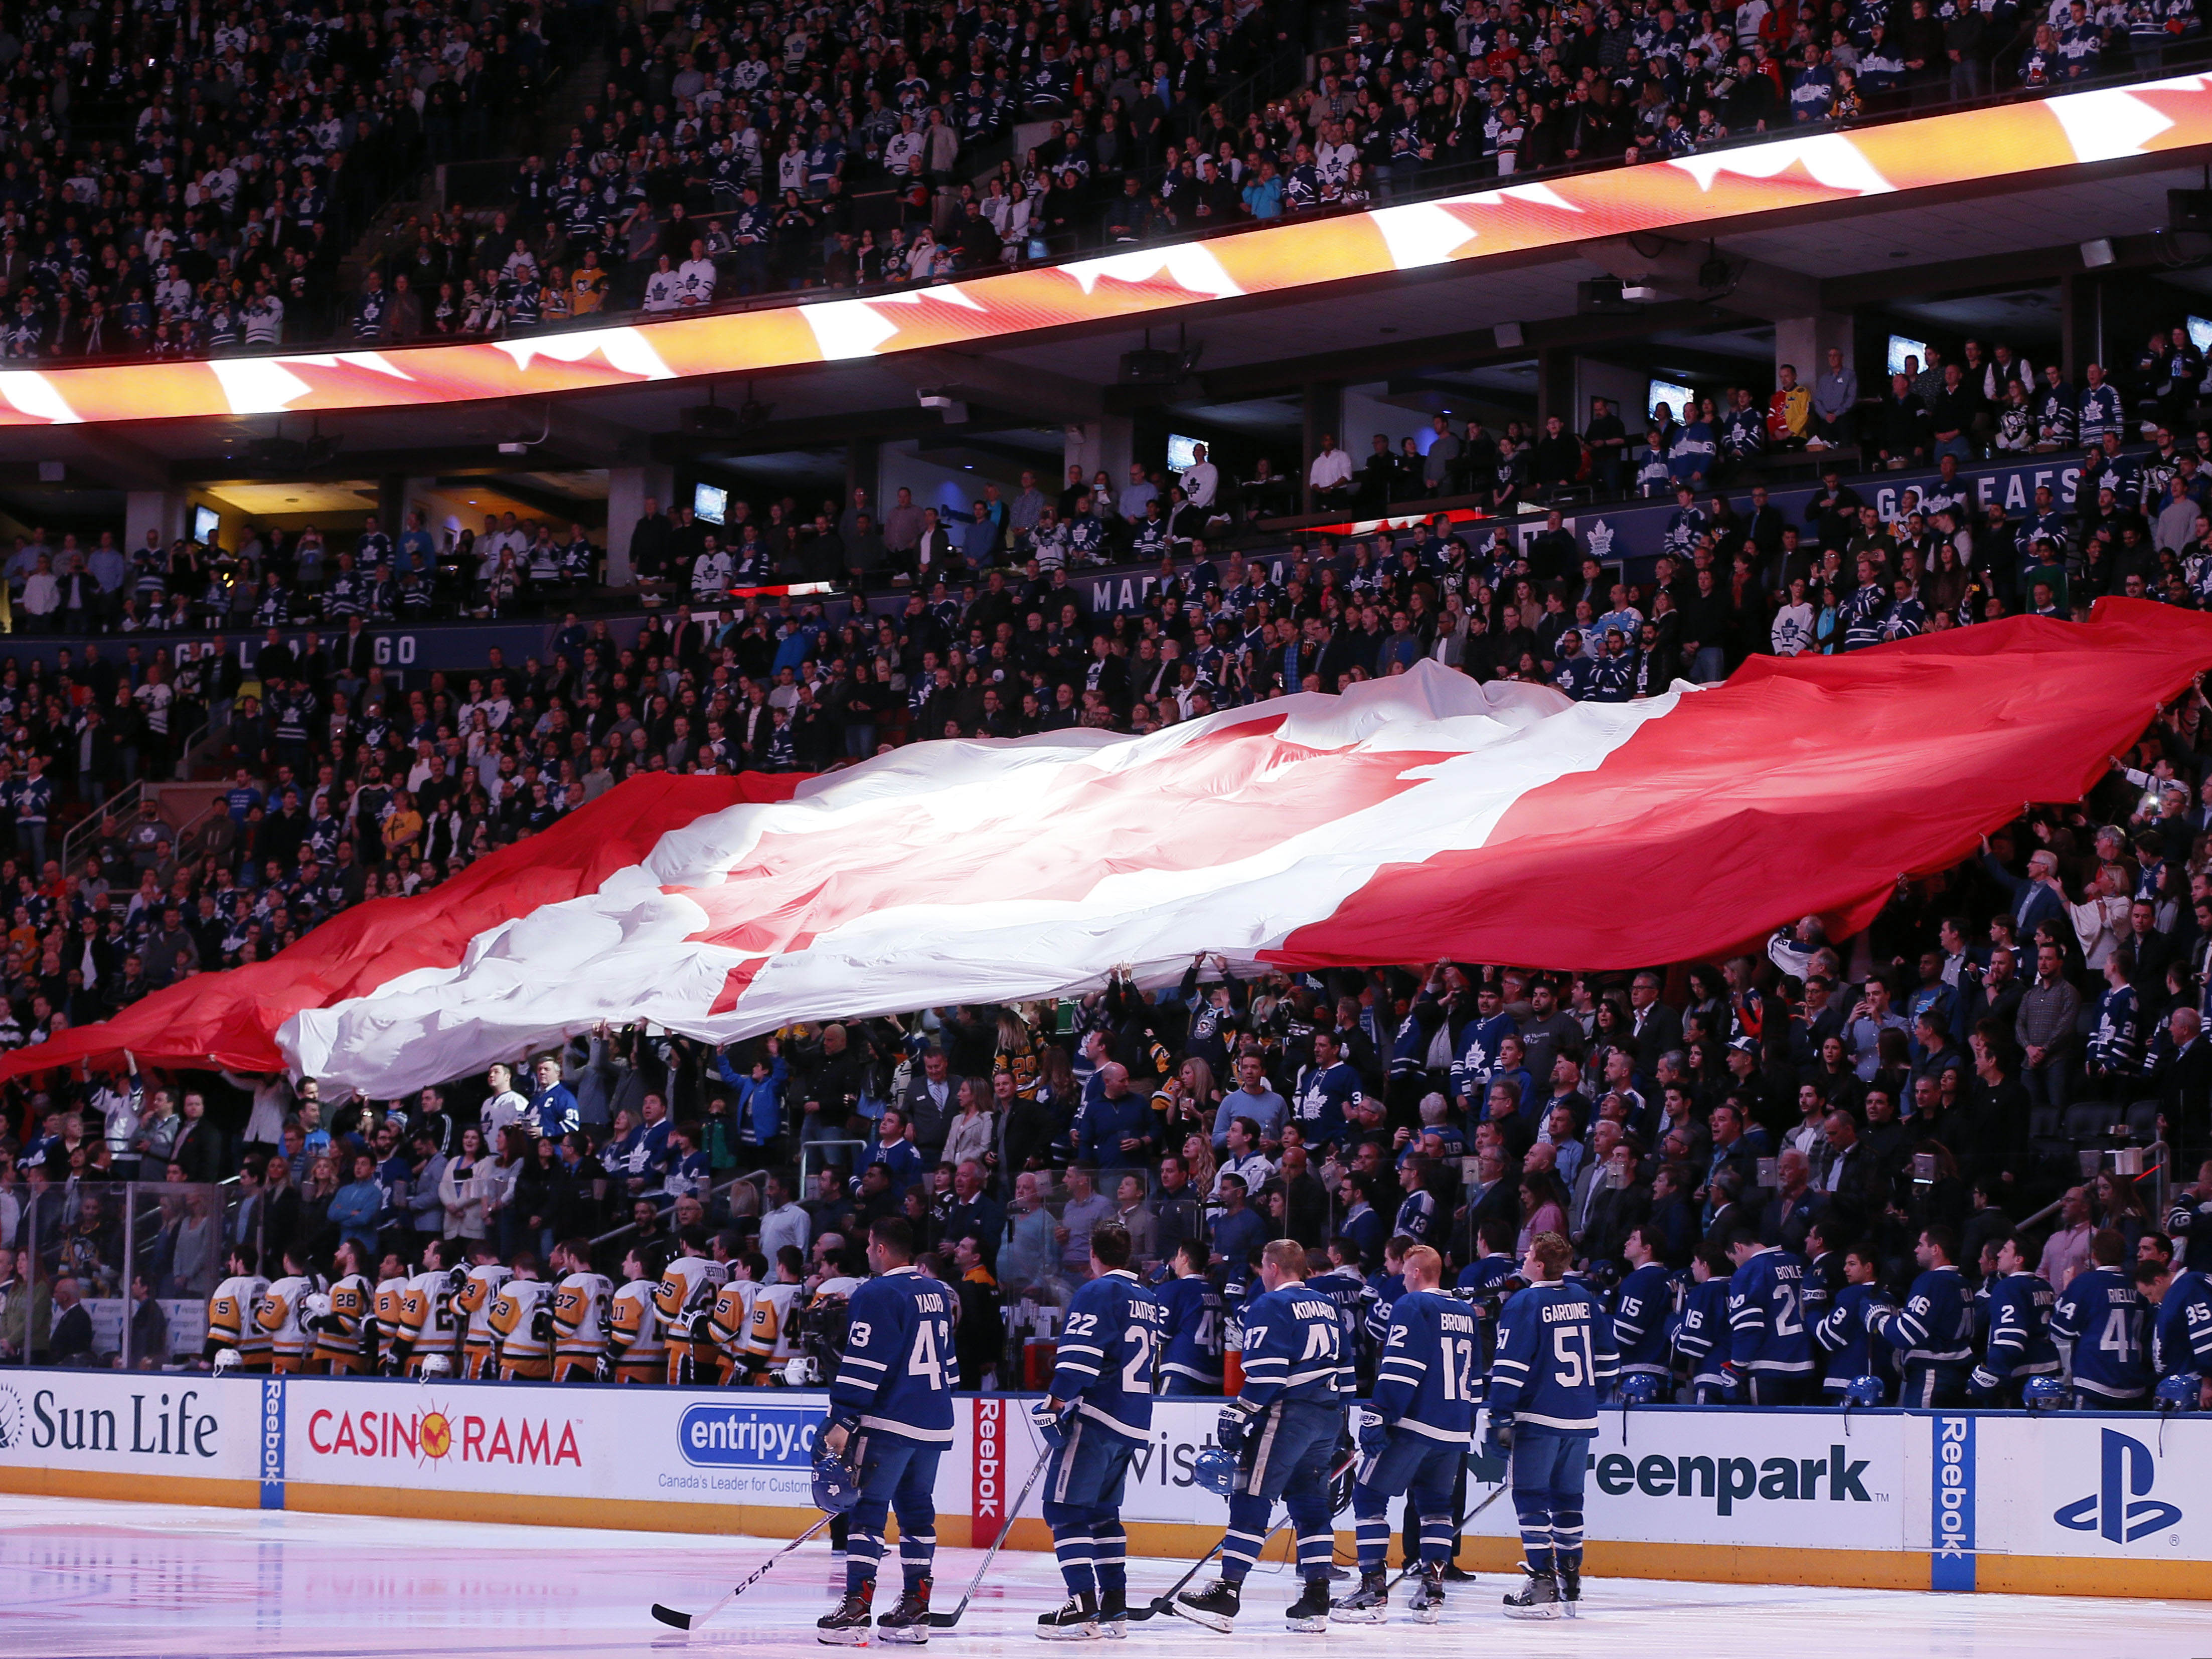 10001478-nhl-pittsburgh-penguins-at-toronto-maple-leafs